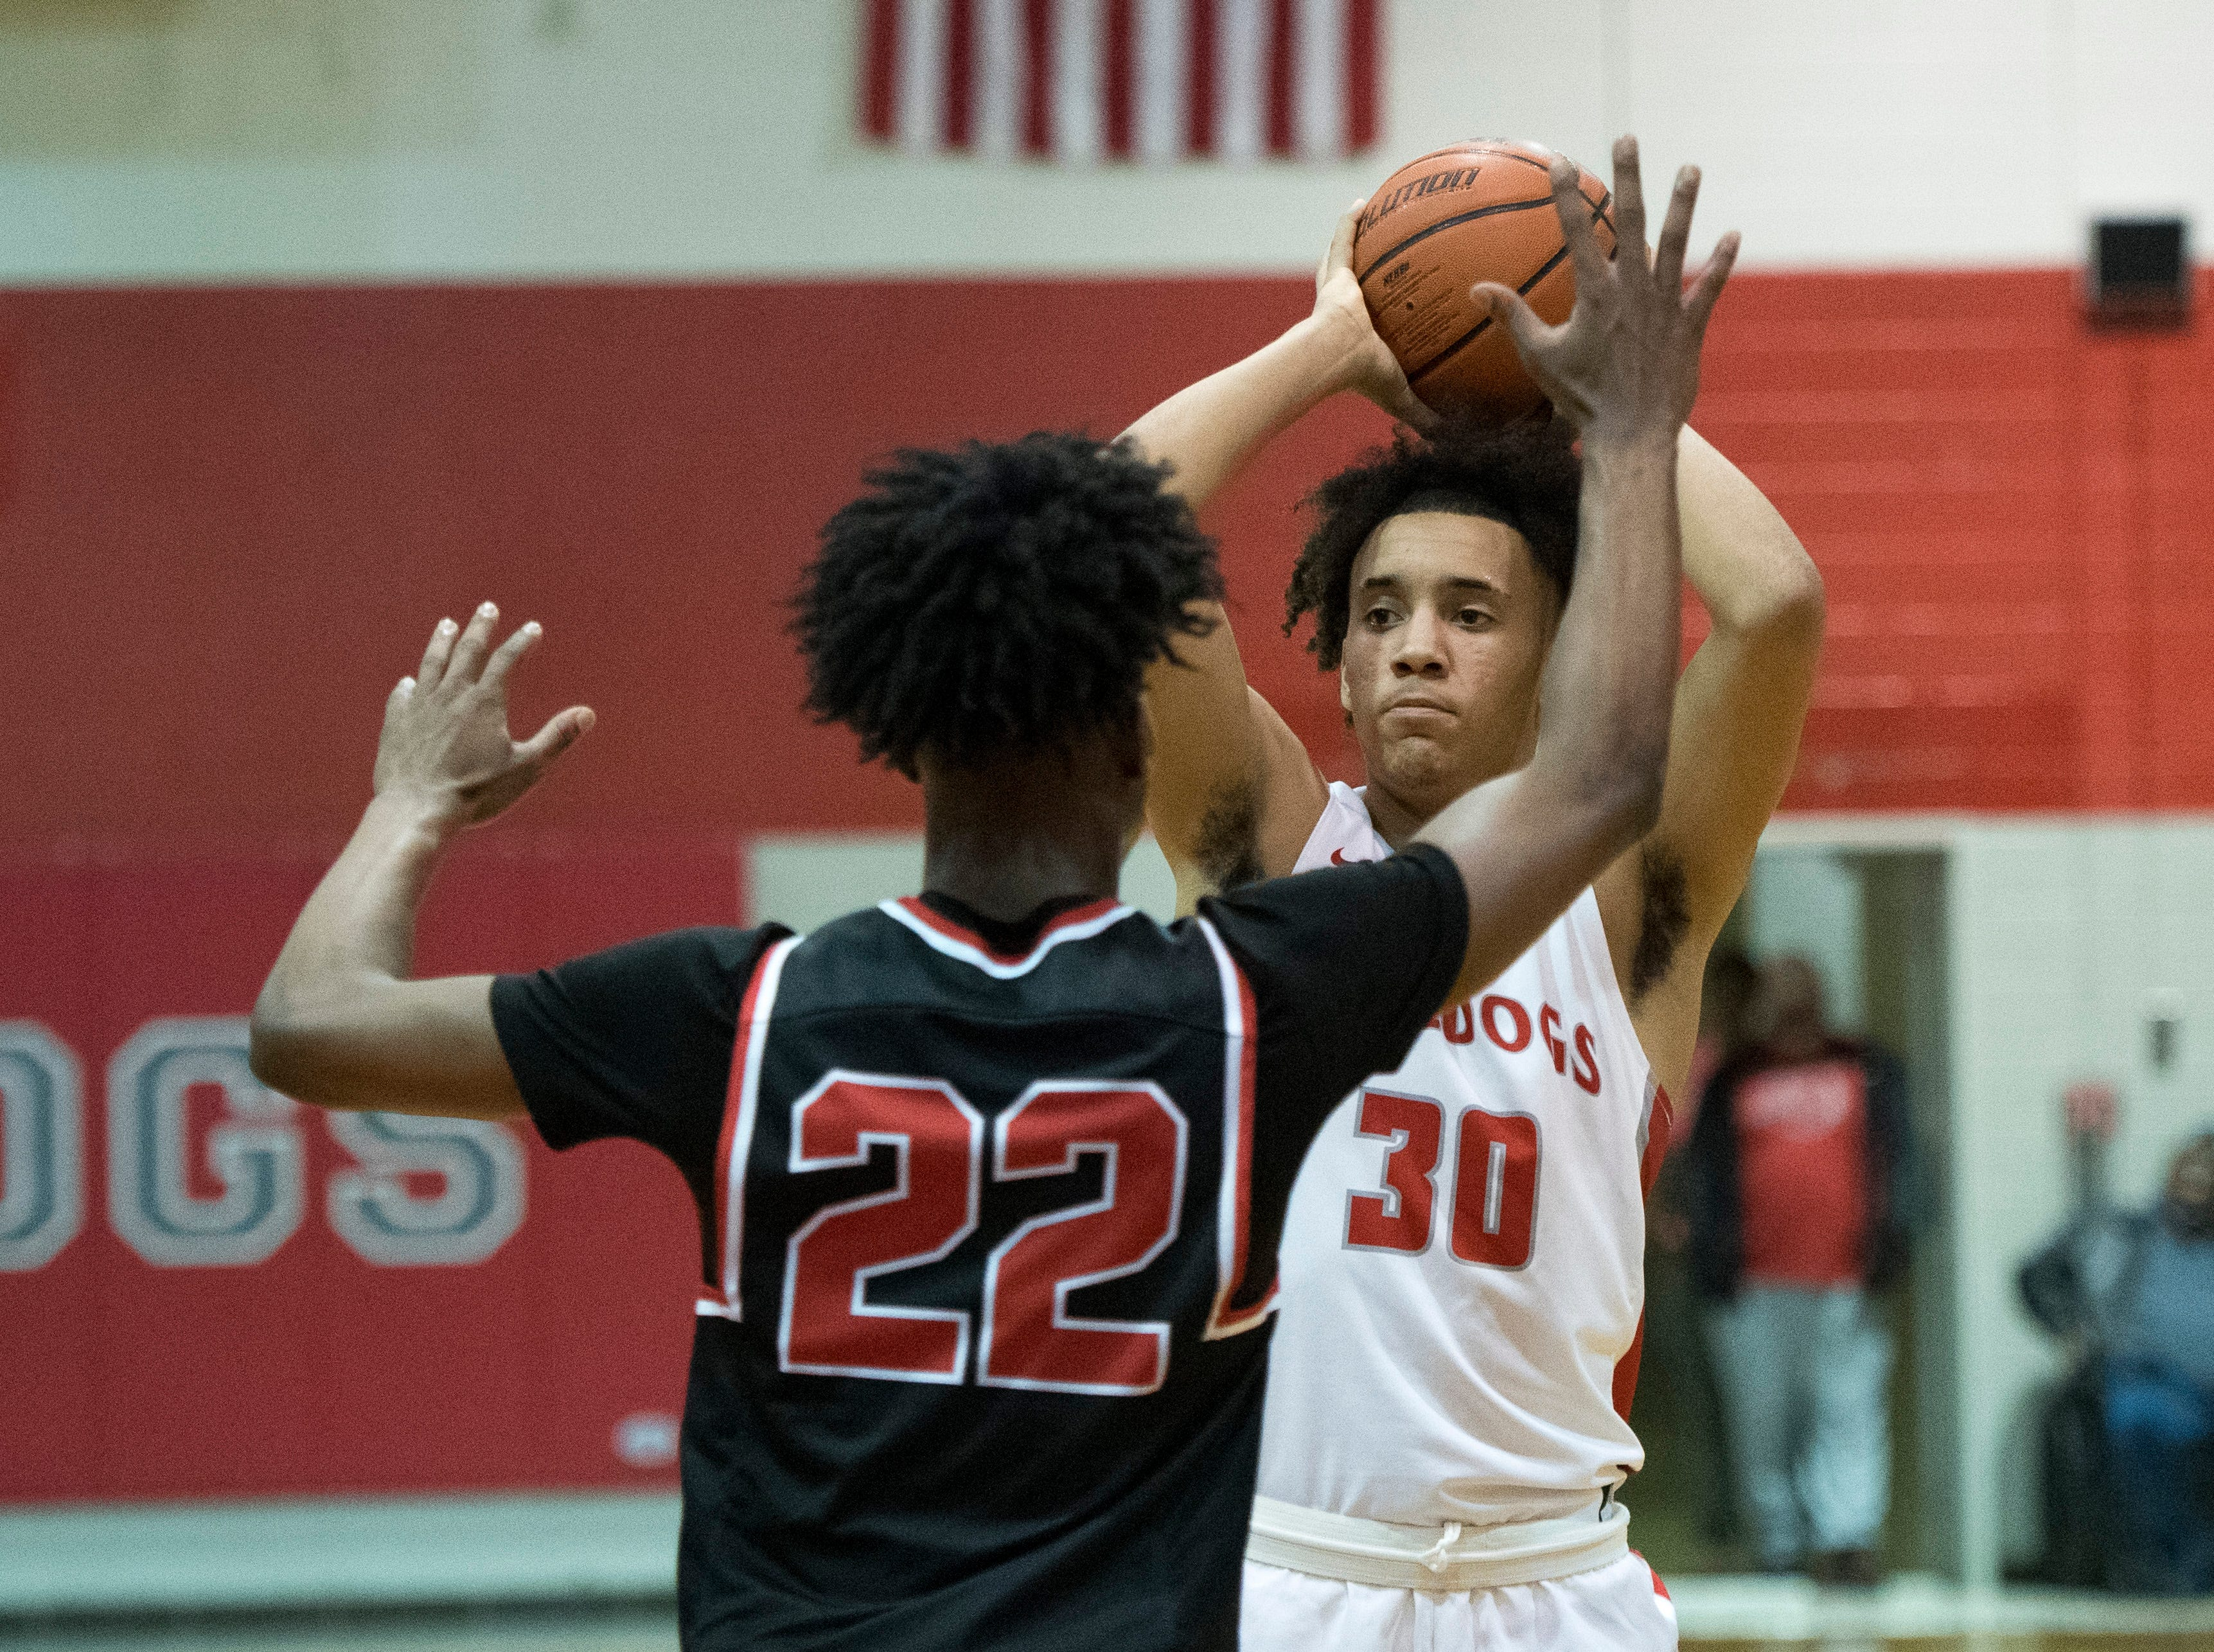 Bosse's Donovan Mcneal (30) passes the ball during the Harrison vs Bosse game at Bosse High School Tuesday, Feb. 12, 2019. The Bosse Bulldogs won 74-56.